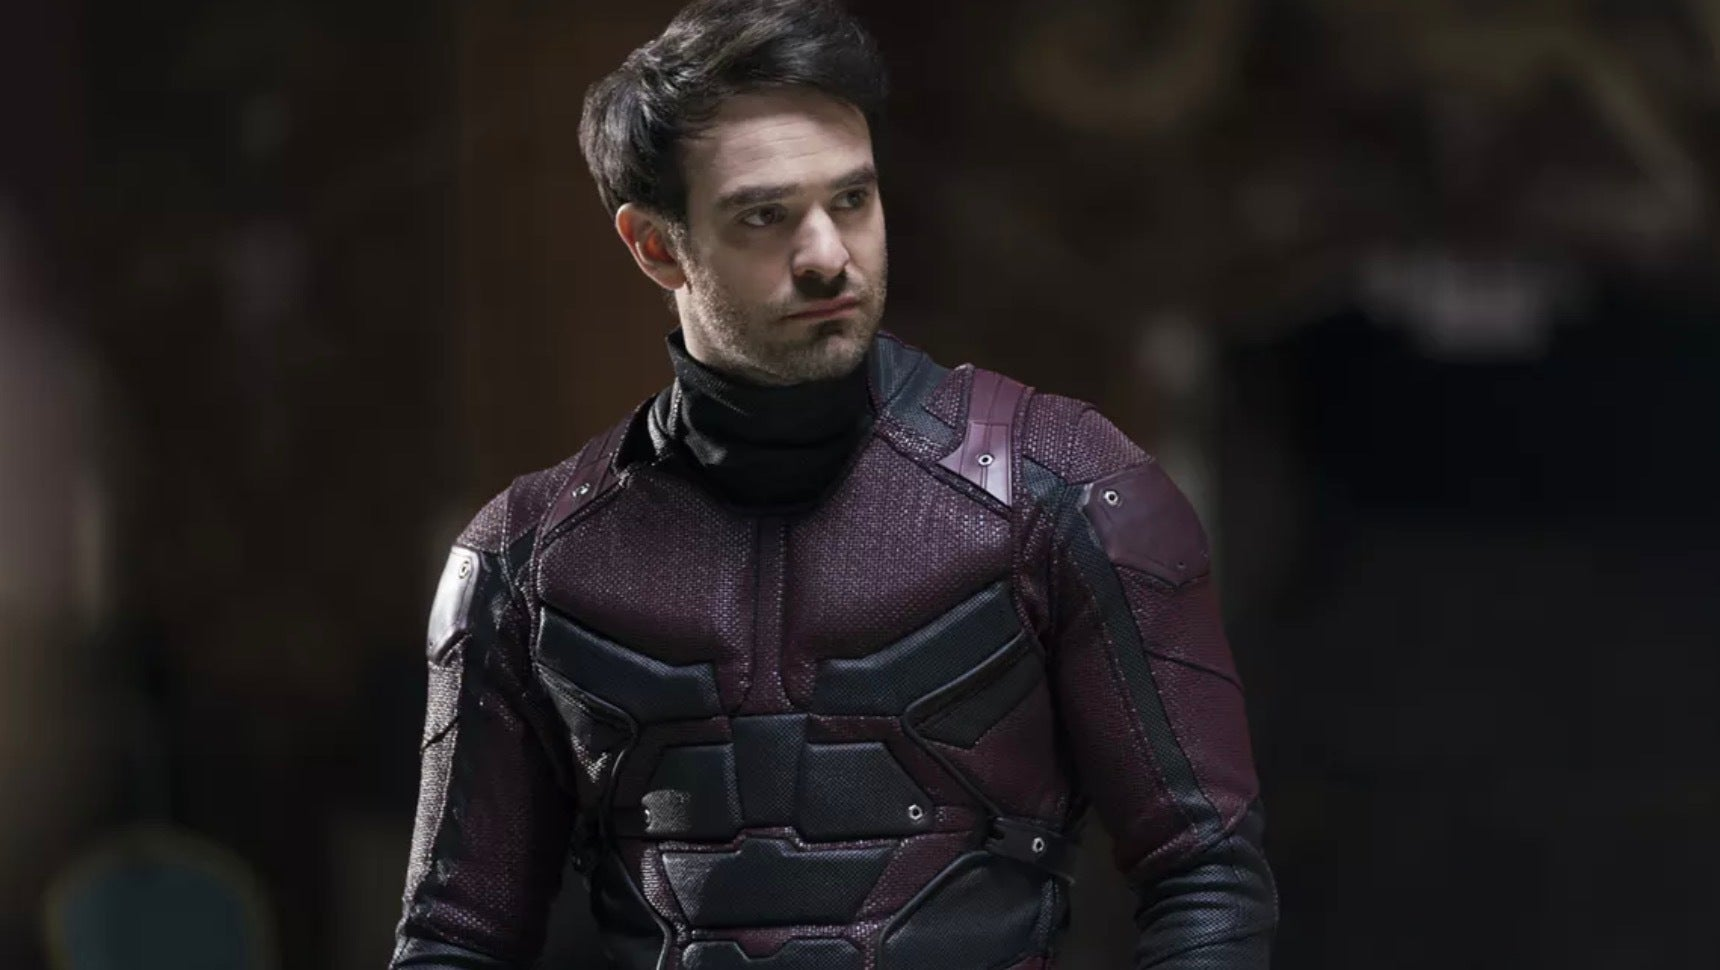 charlie-cox daredevil tag-entertainment marvel netflix streaming